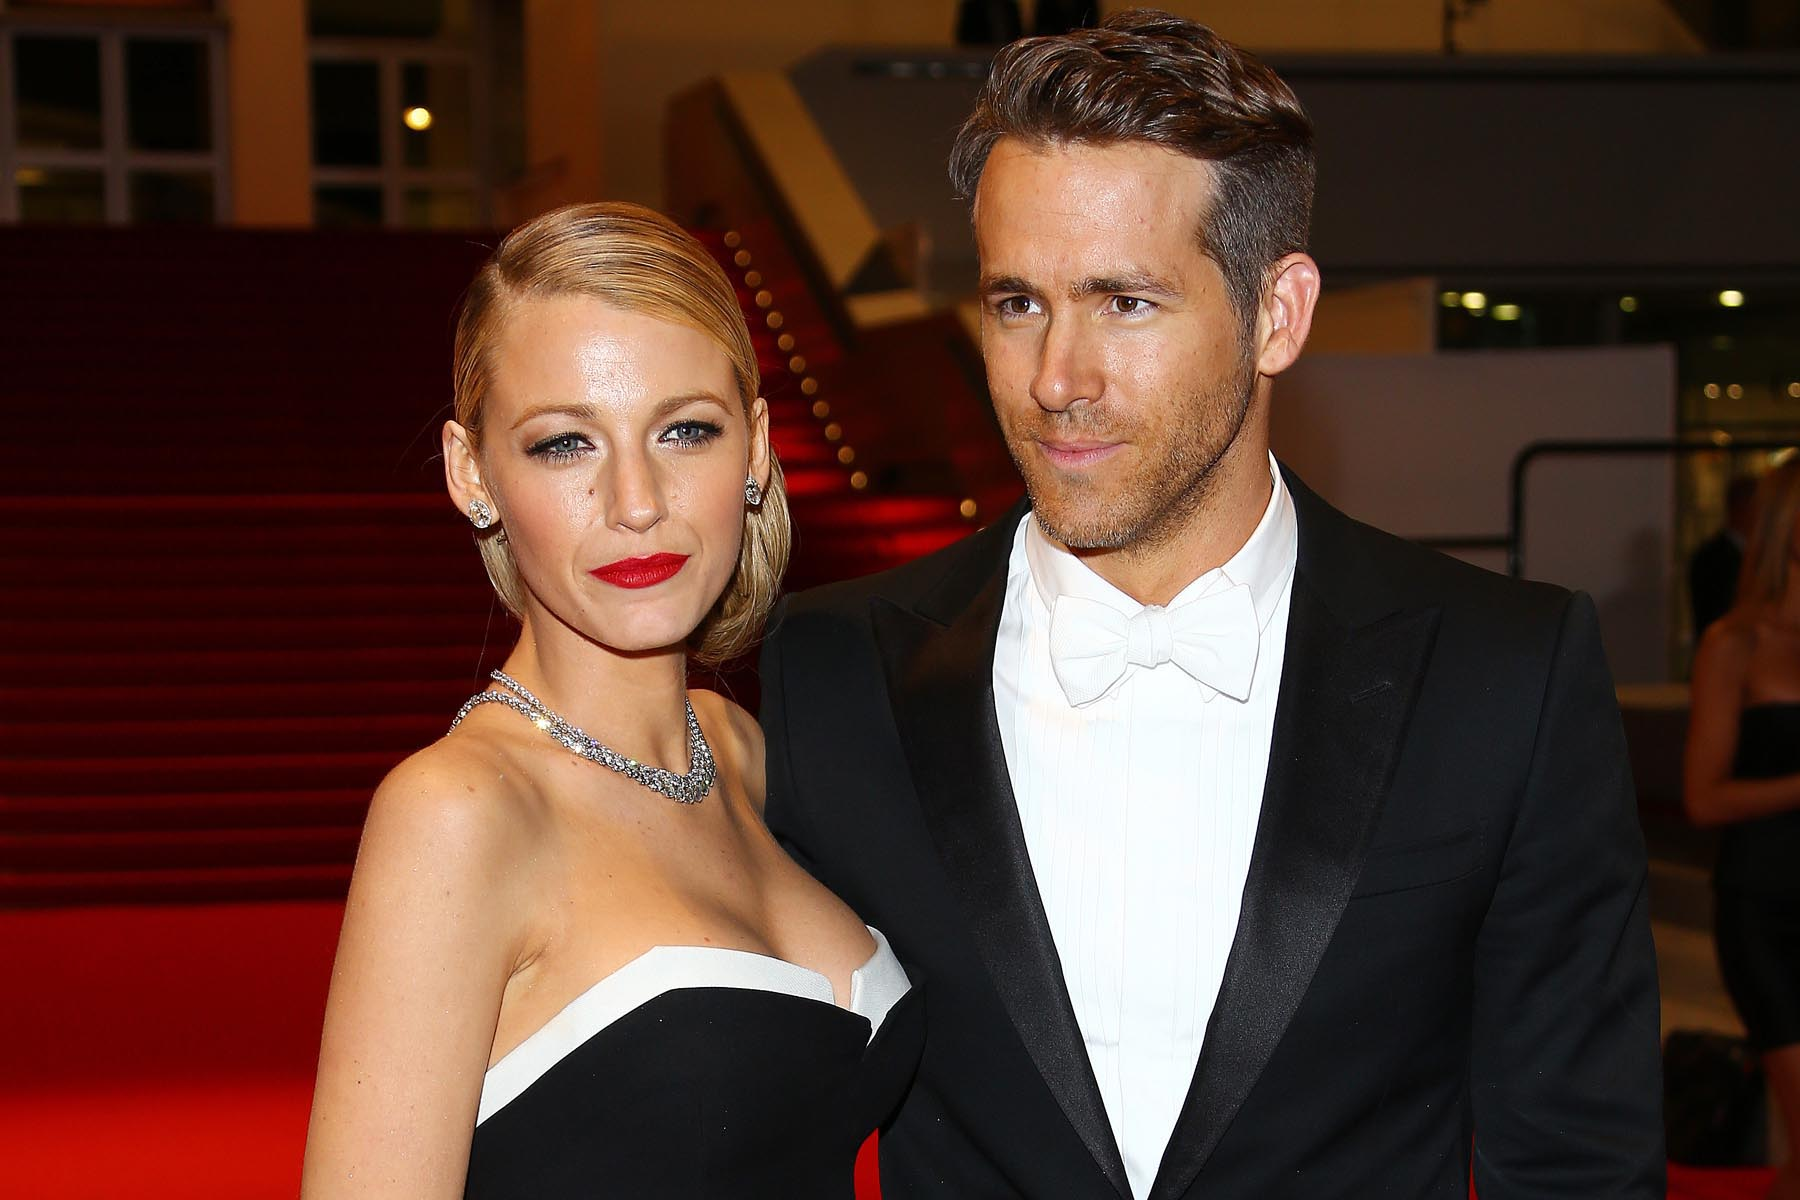 Blake Lively and Ryan Reynolds are expecting their first baby